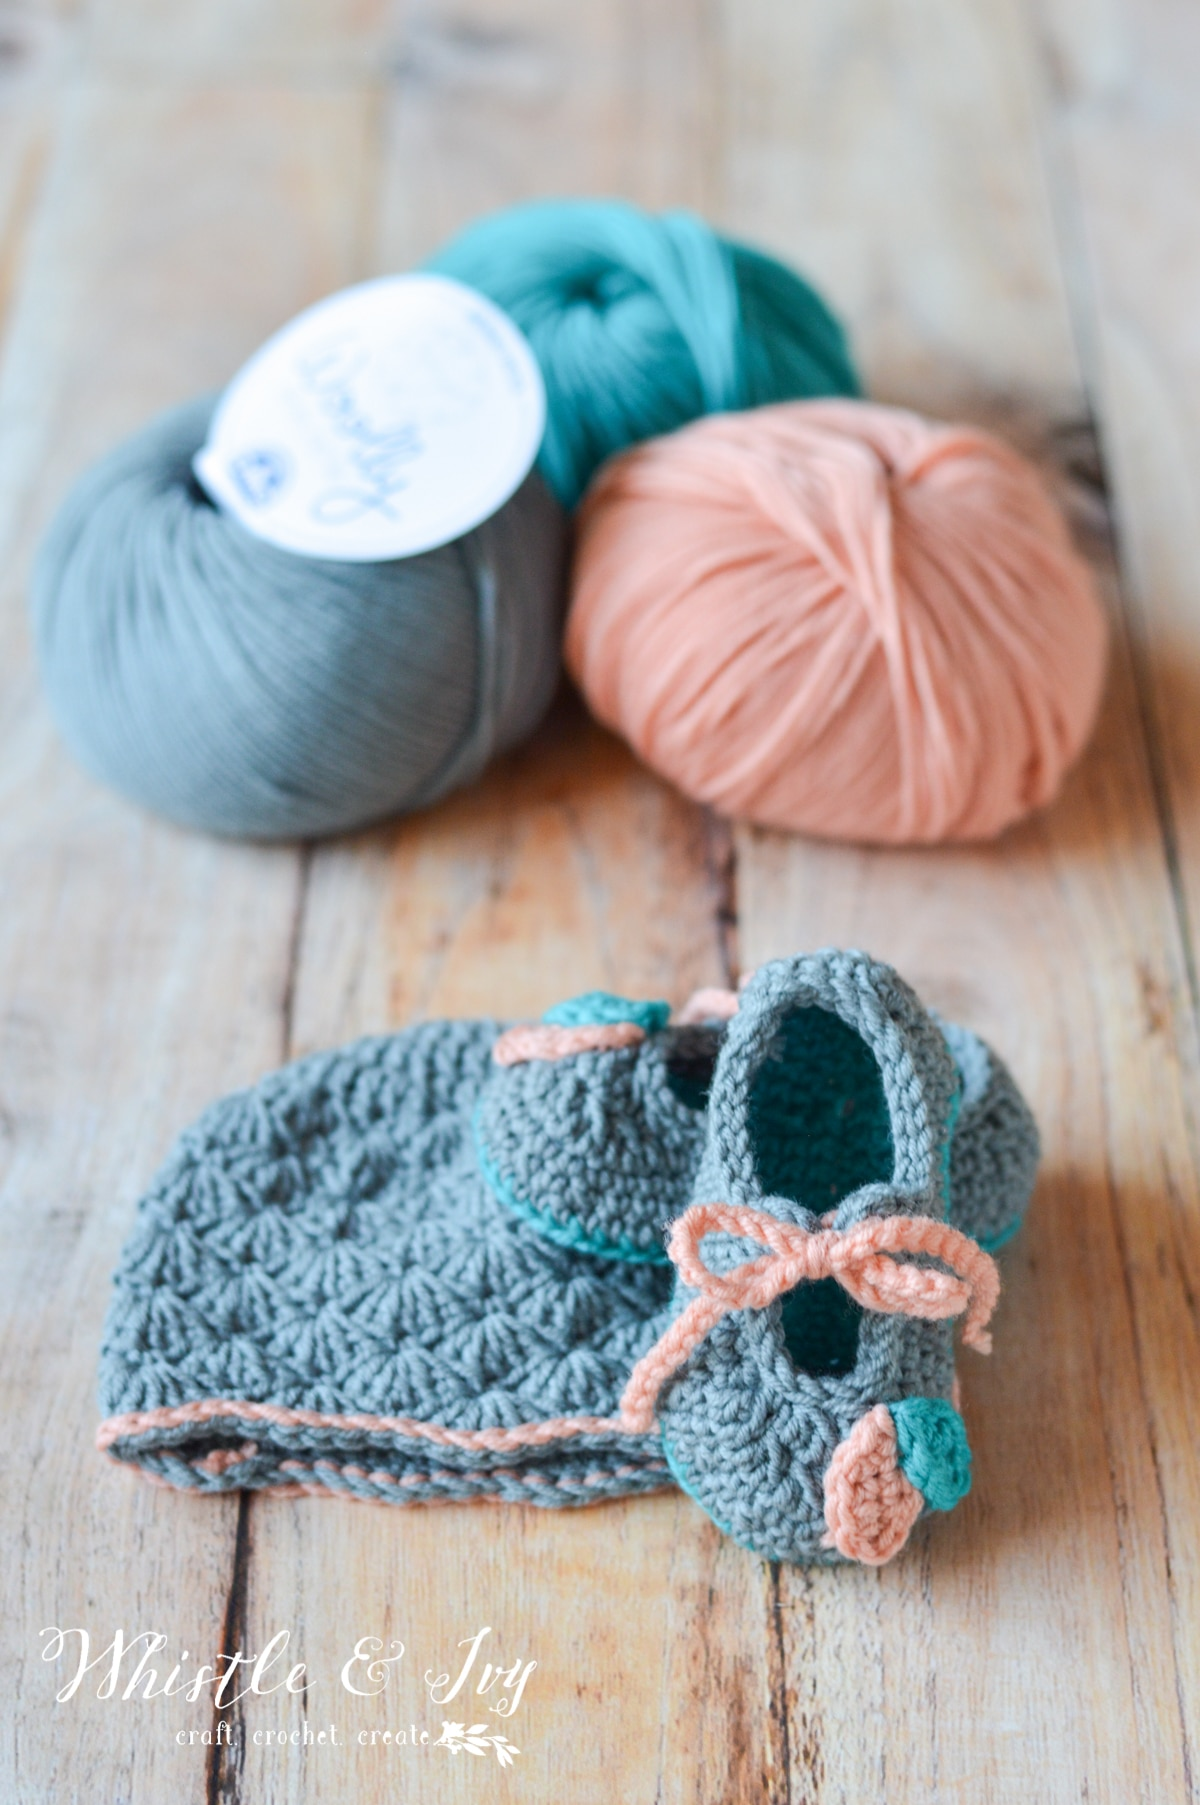 Crochet for Baby Archives - Whistle and Ivy